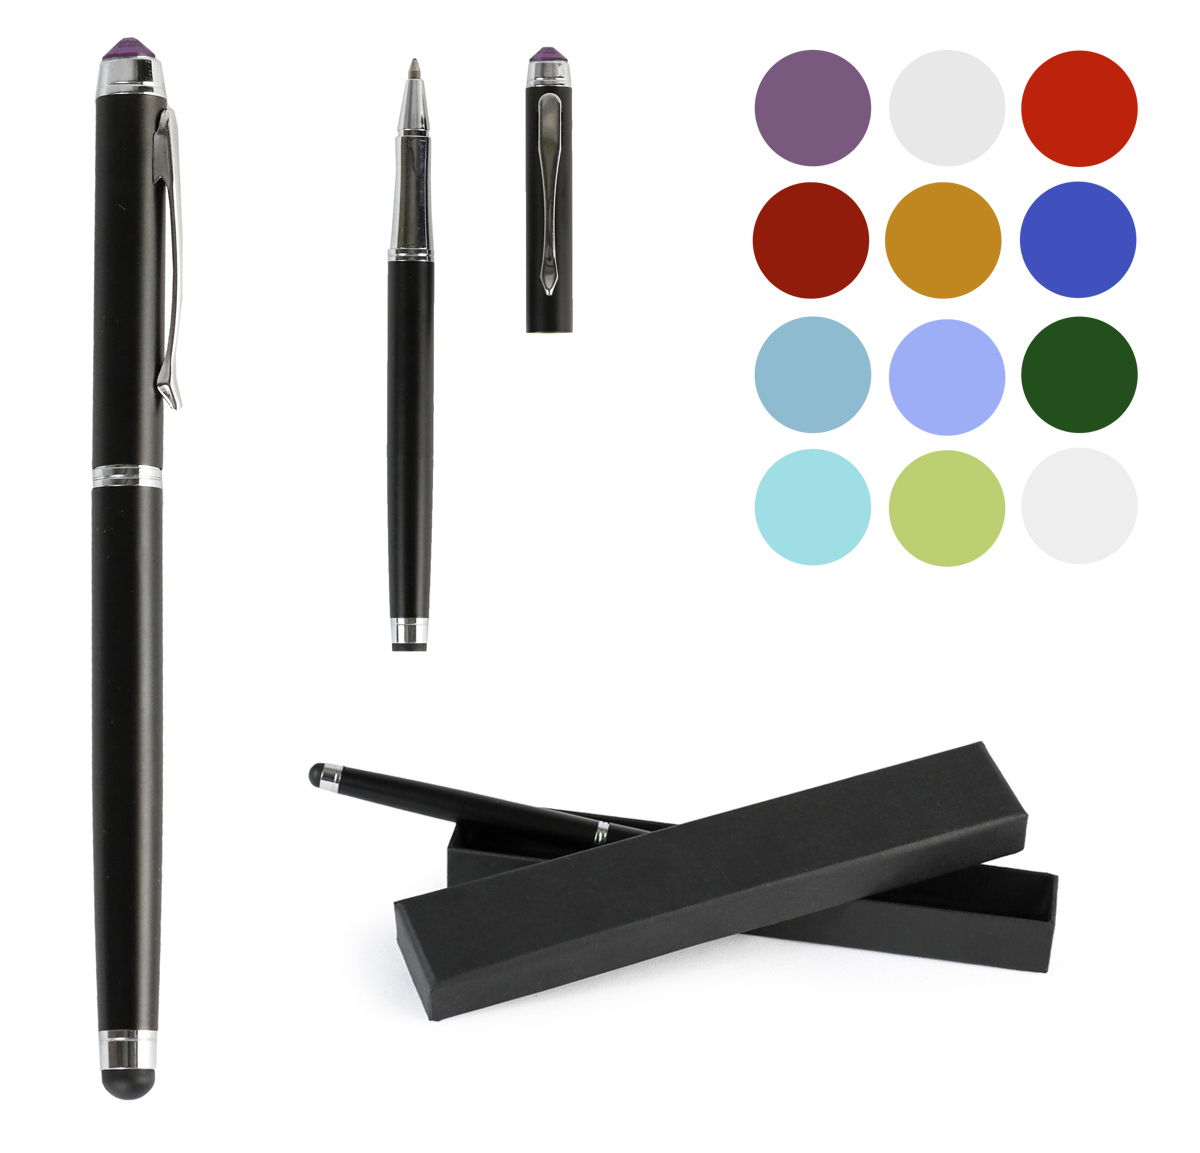 Universal Stylus Pen - Touch Screen with Gem for Iphone Ipad Tablet Smartphones